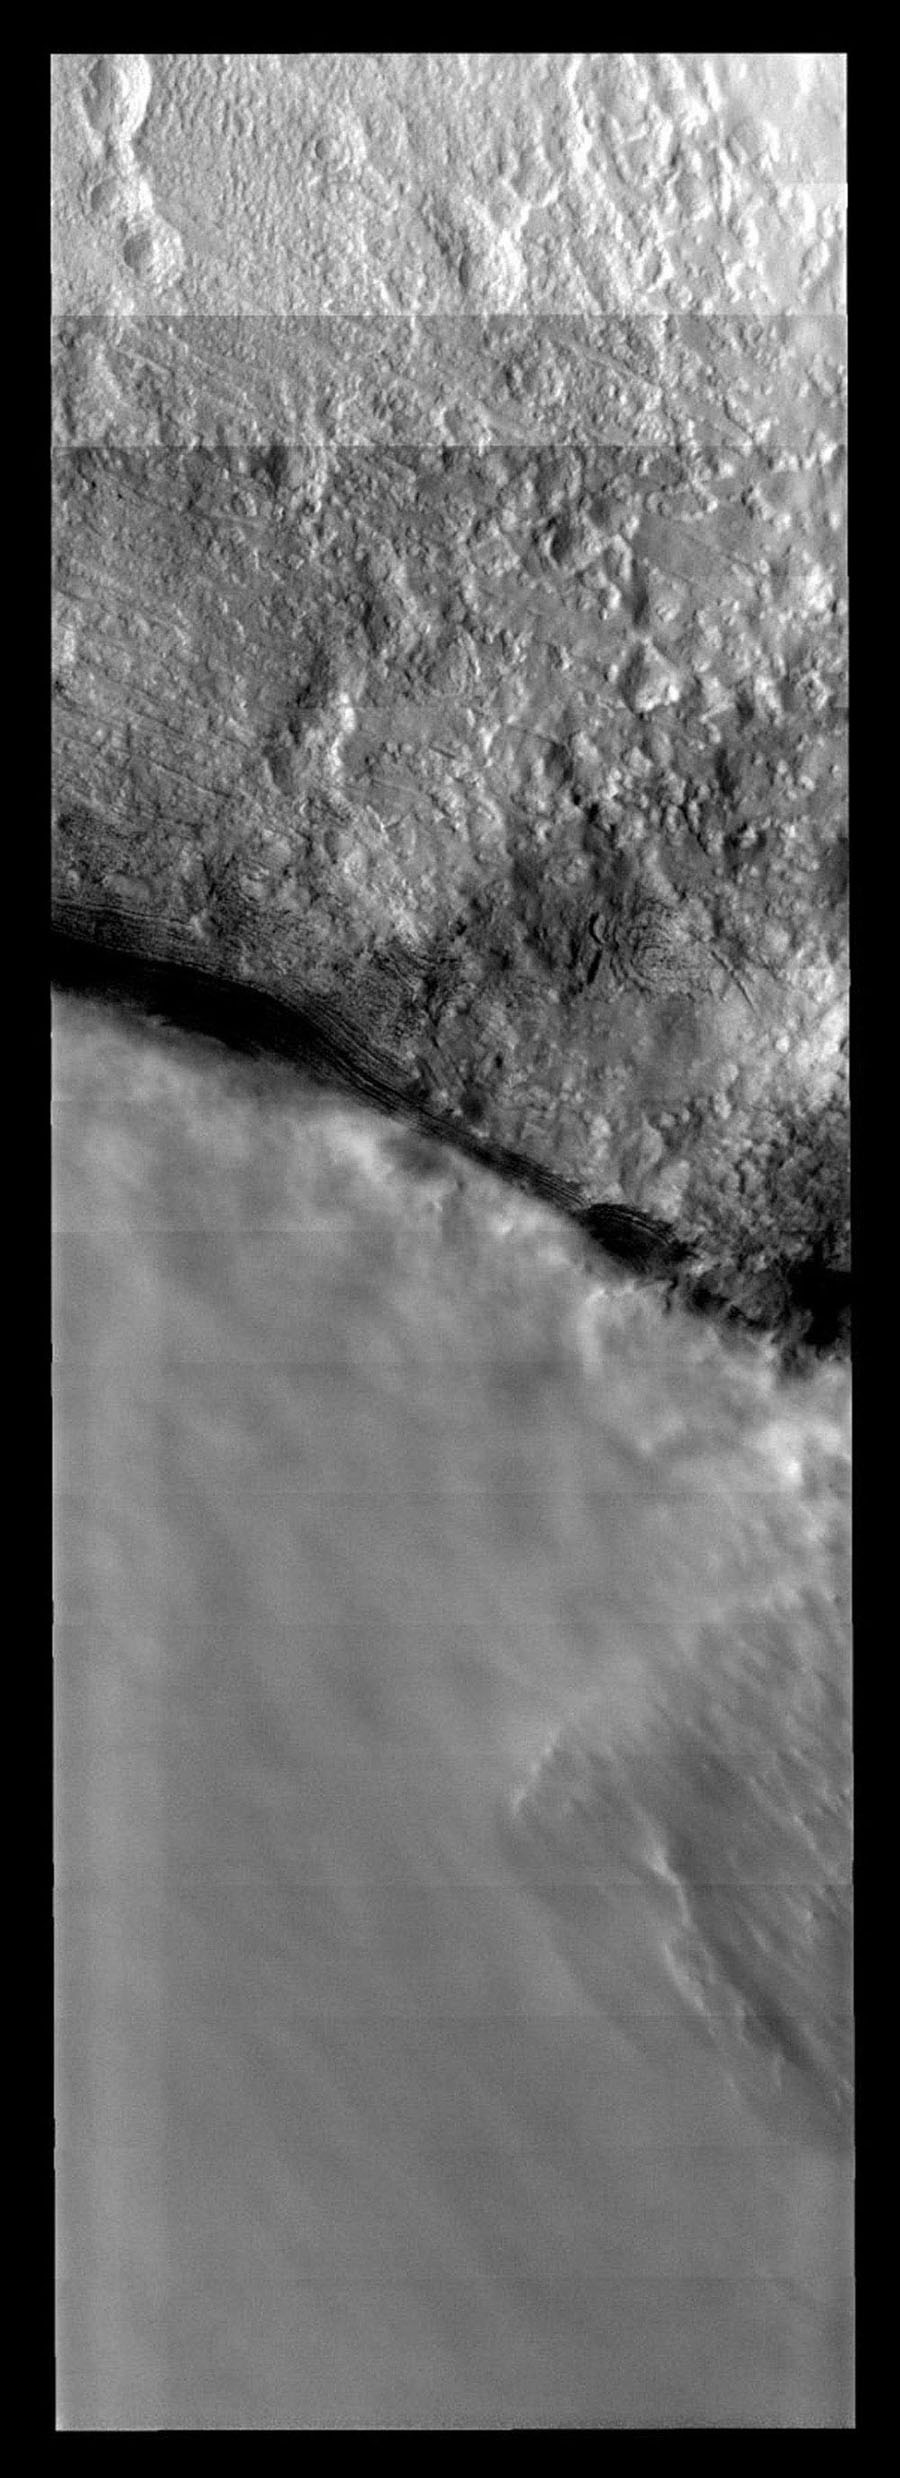 This image from NASA's Mars Odyssey spacecraft shows the border between clear and cloudy that is likely the edge of a polar trough on Mars, with the clouds located in the trough itself.